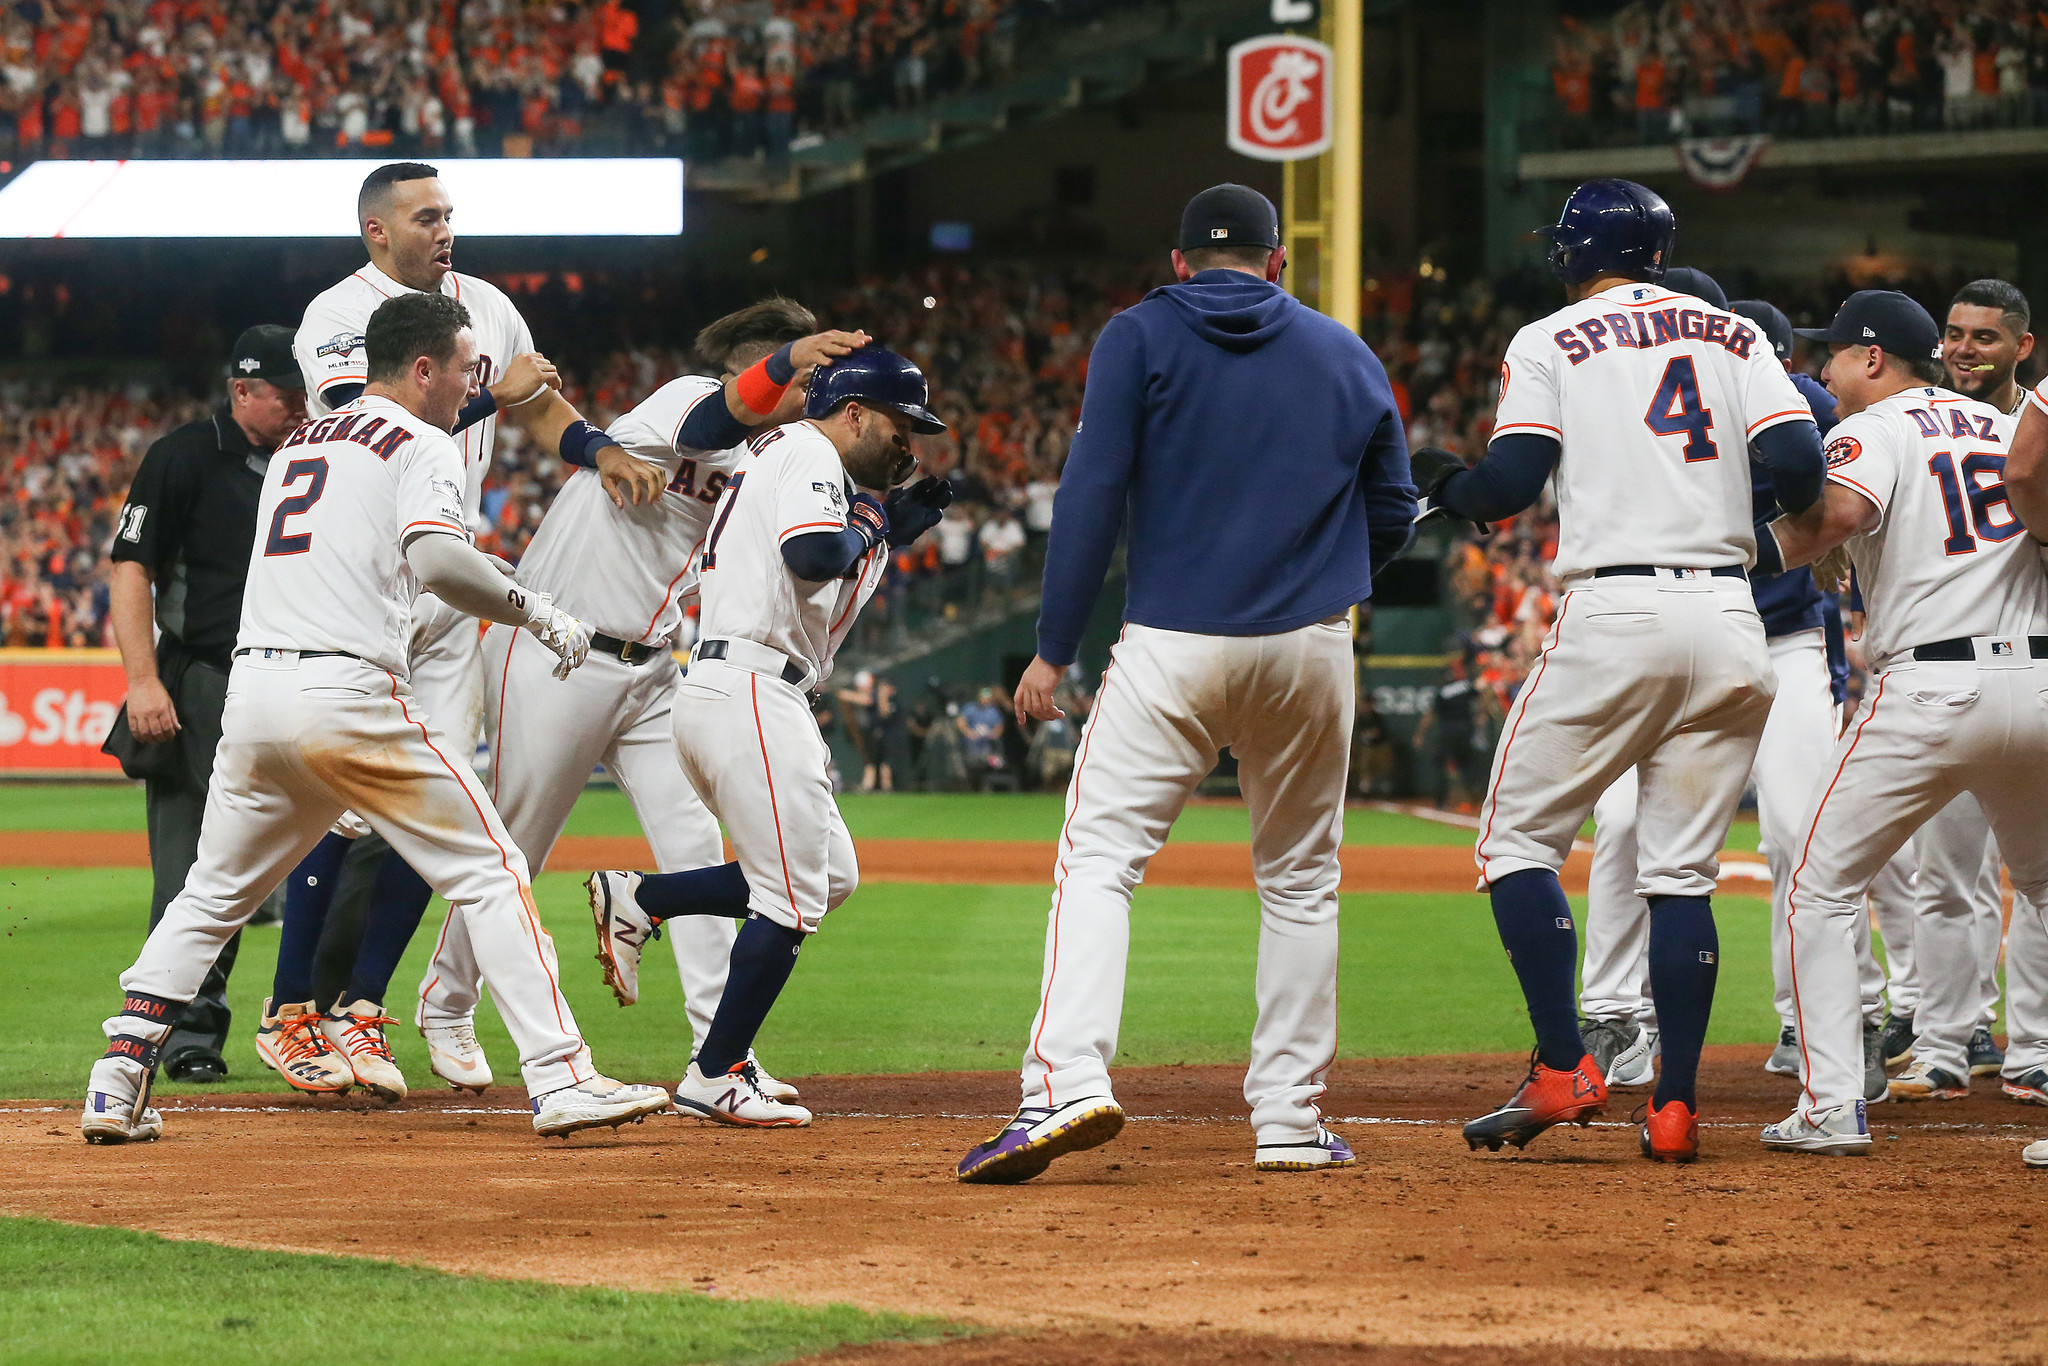 Astros cheating scandal — the worst in the game's history — now part of the fabric of baseball